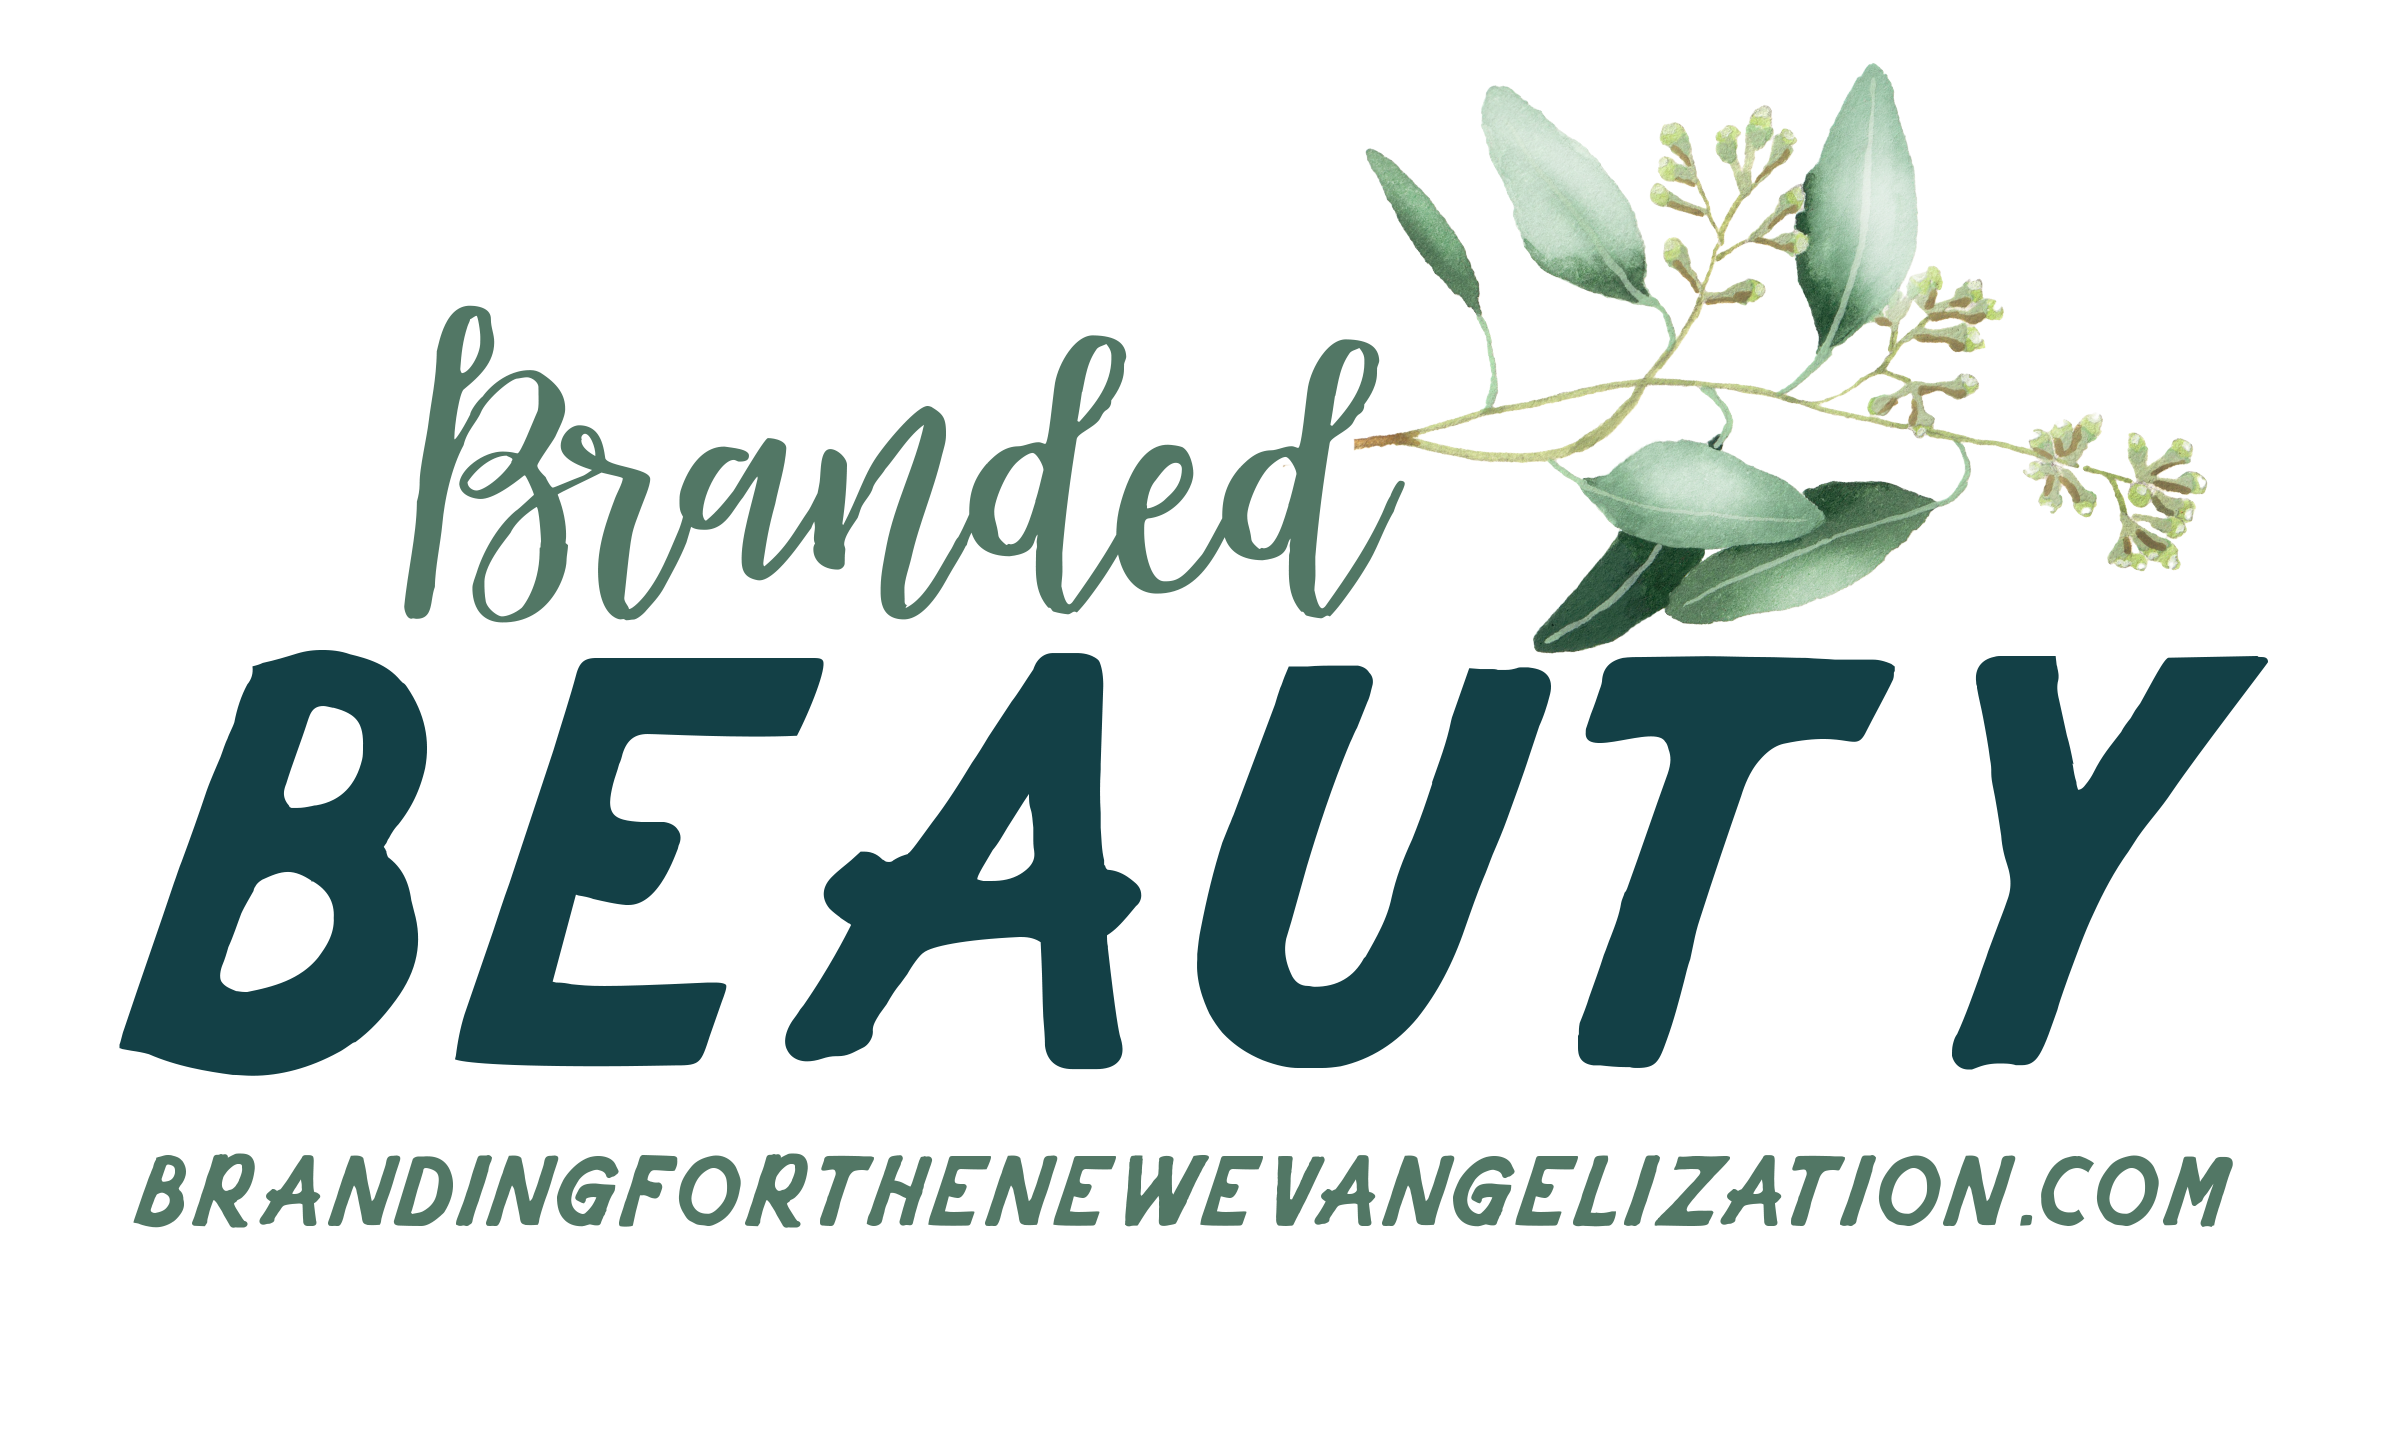 Coming Soon: Branding for the New Evangelization Course